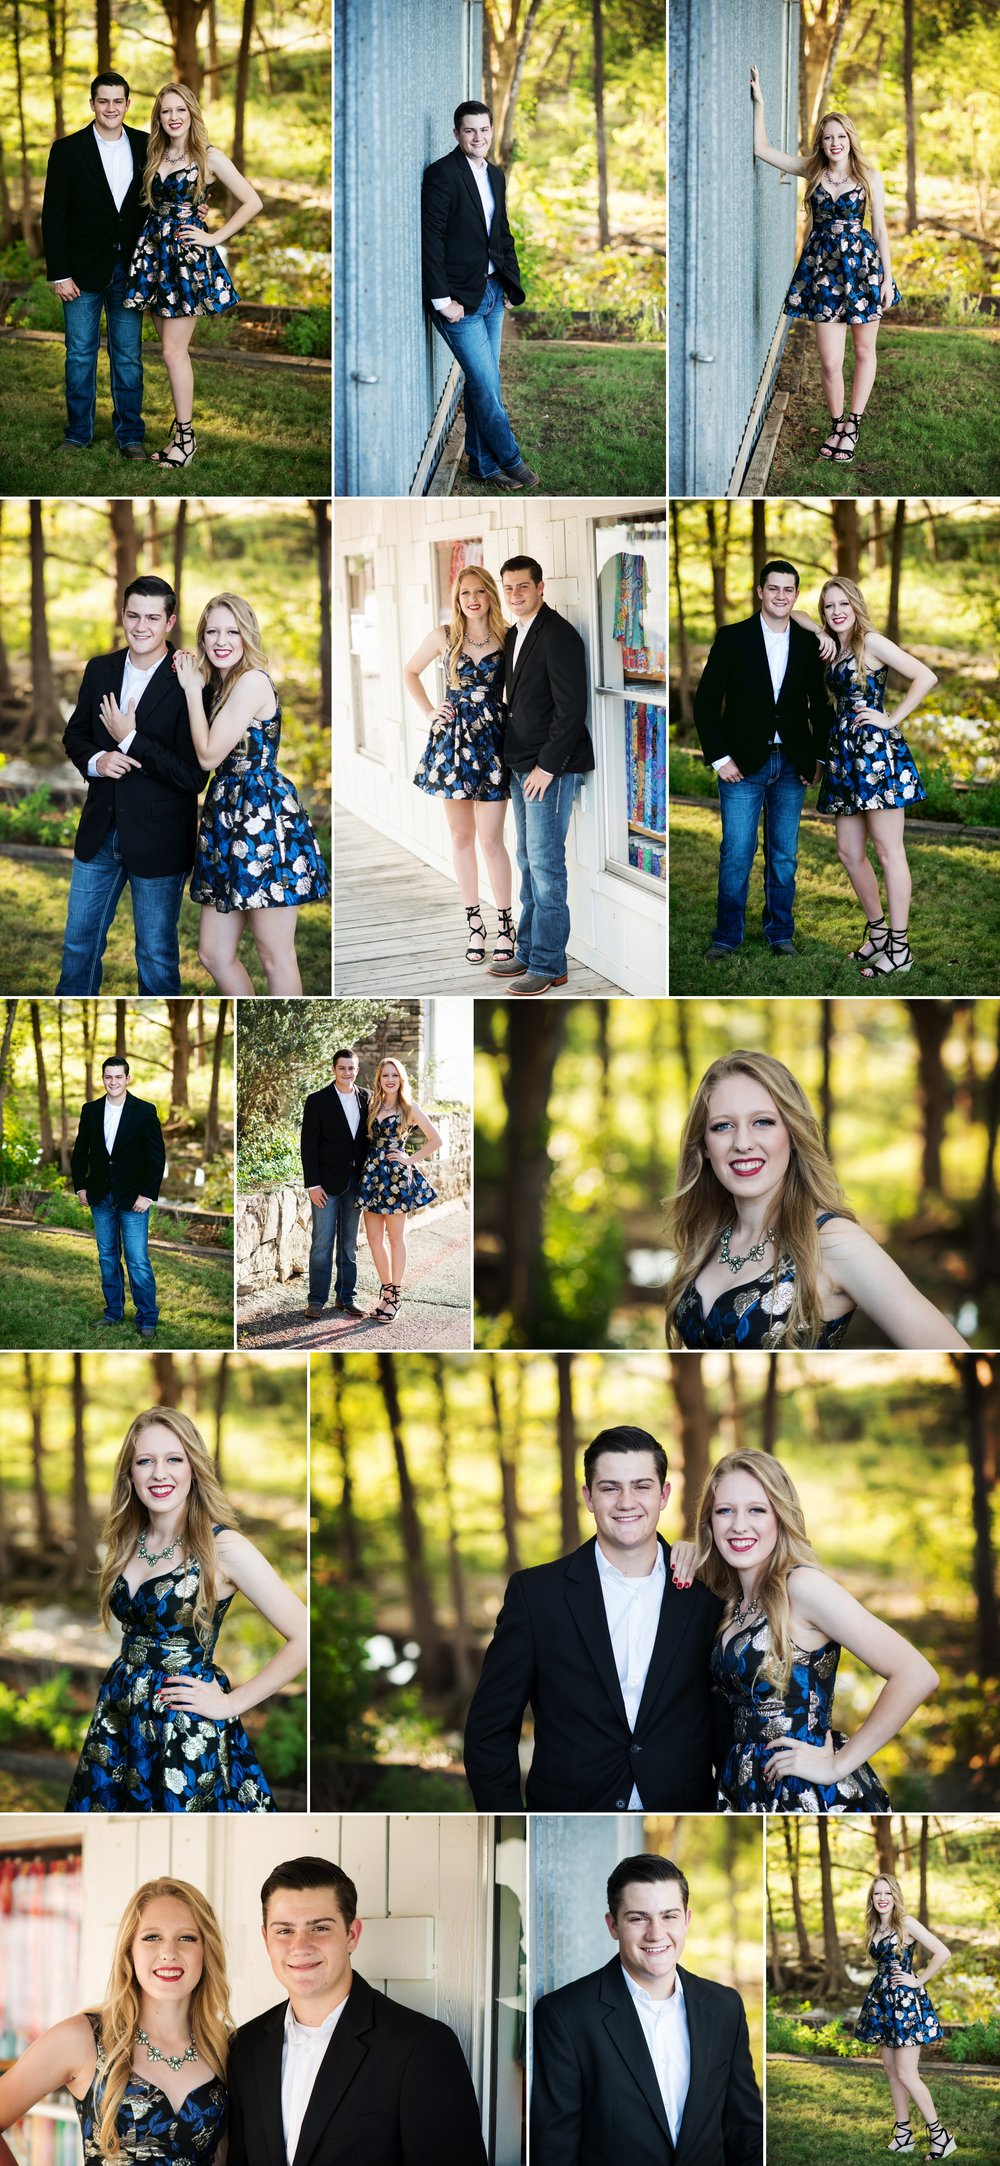 Austin Senior Photographer Heidi Knight Photography.  Homecoming photos.  Cute couple poses for friends.  Royal, black and gold party dress.  Black jacket, boots, jeans.  Texas formal.